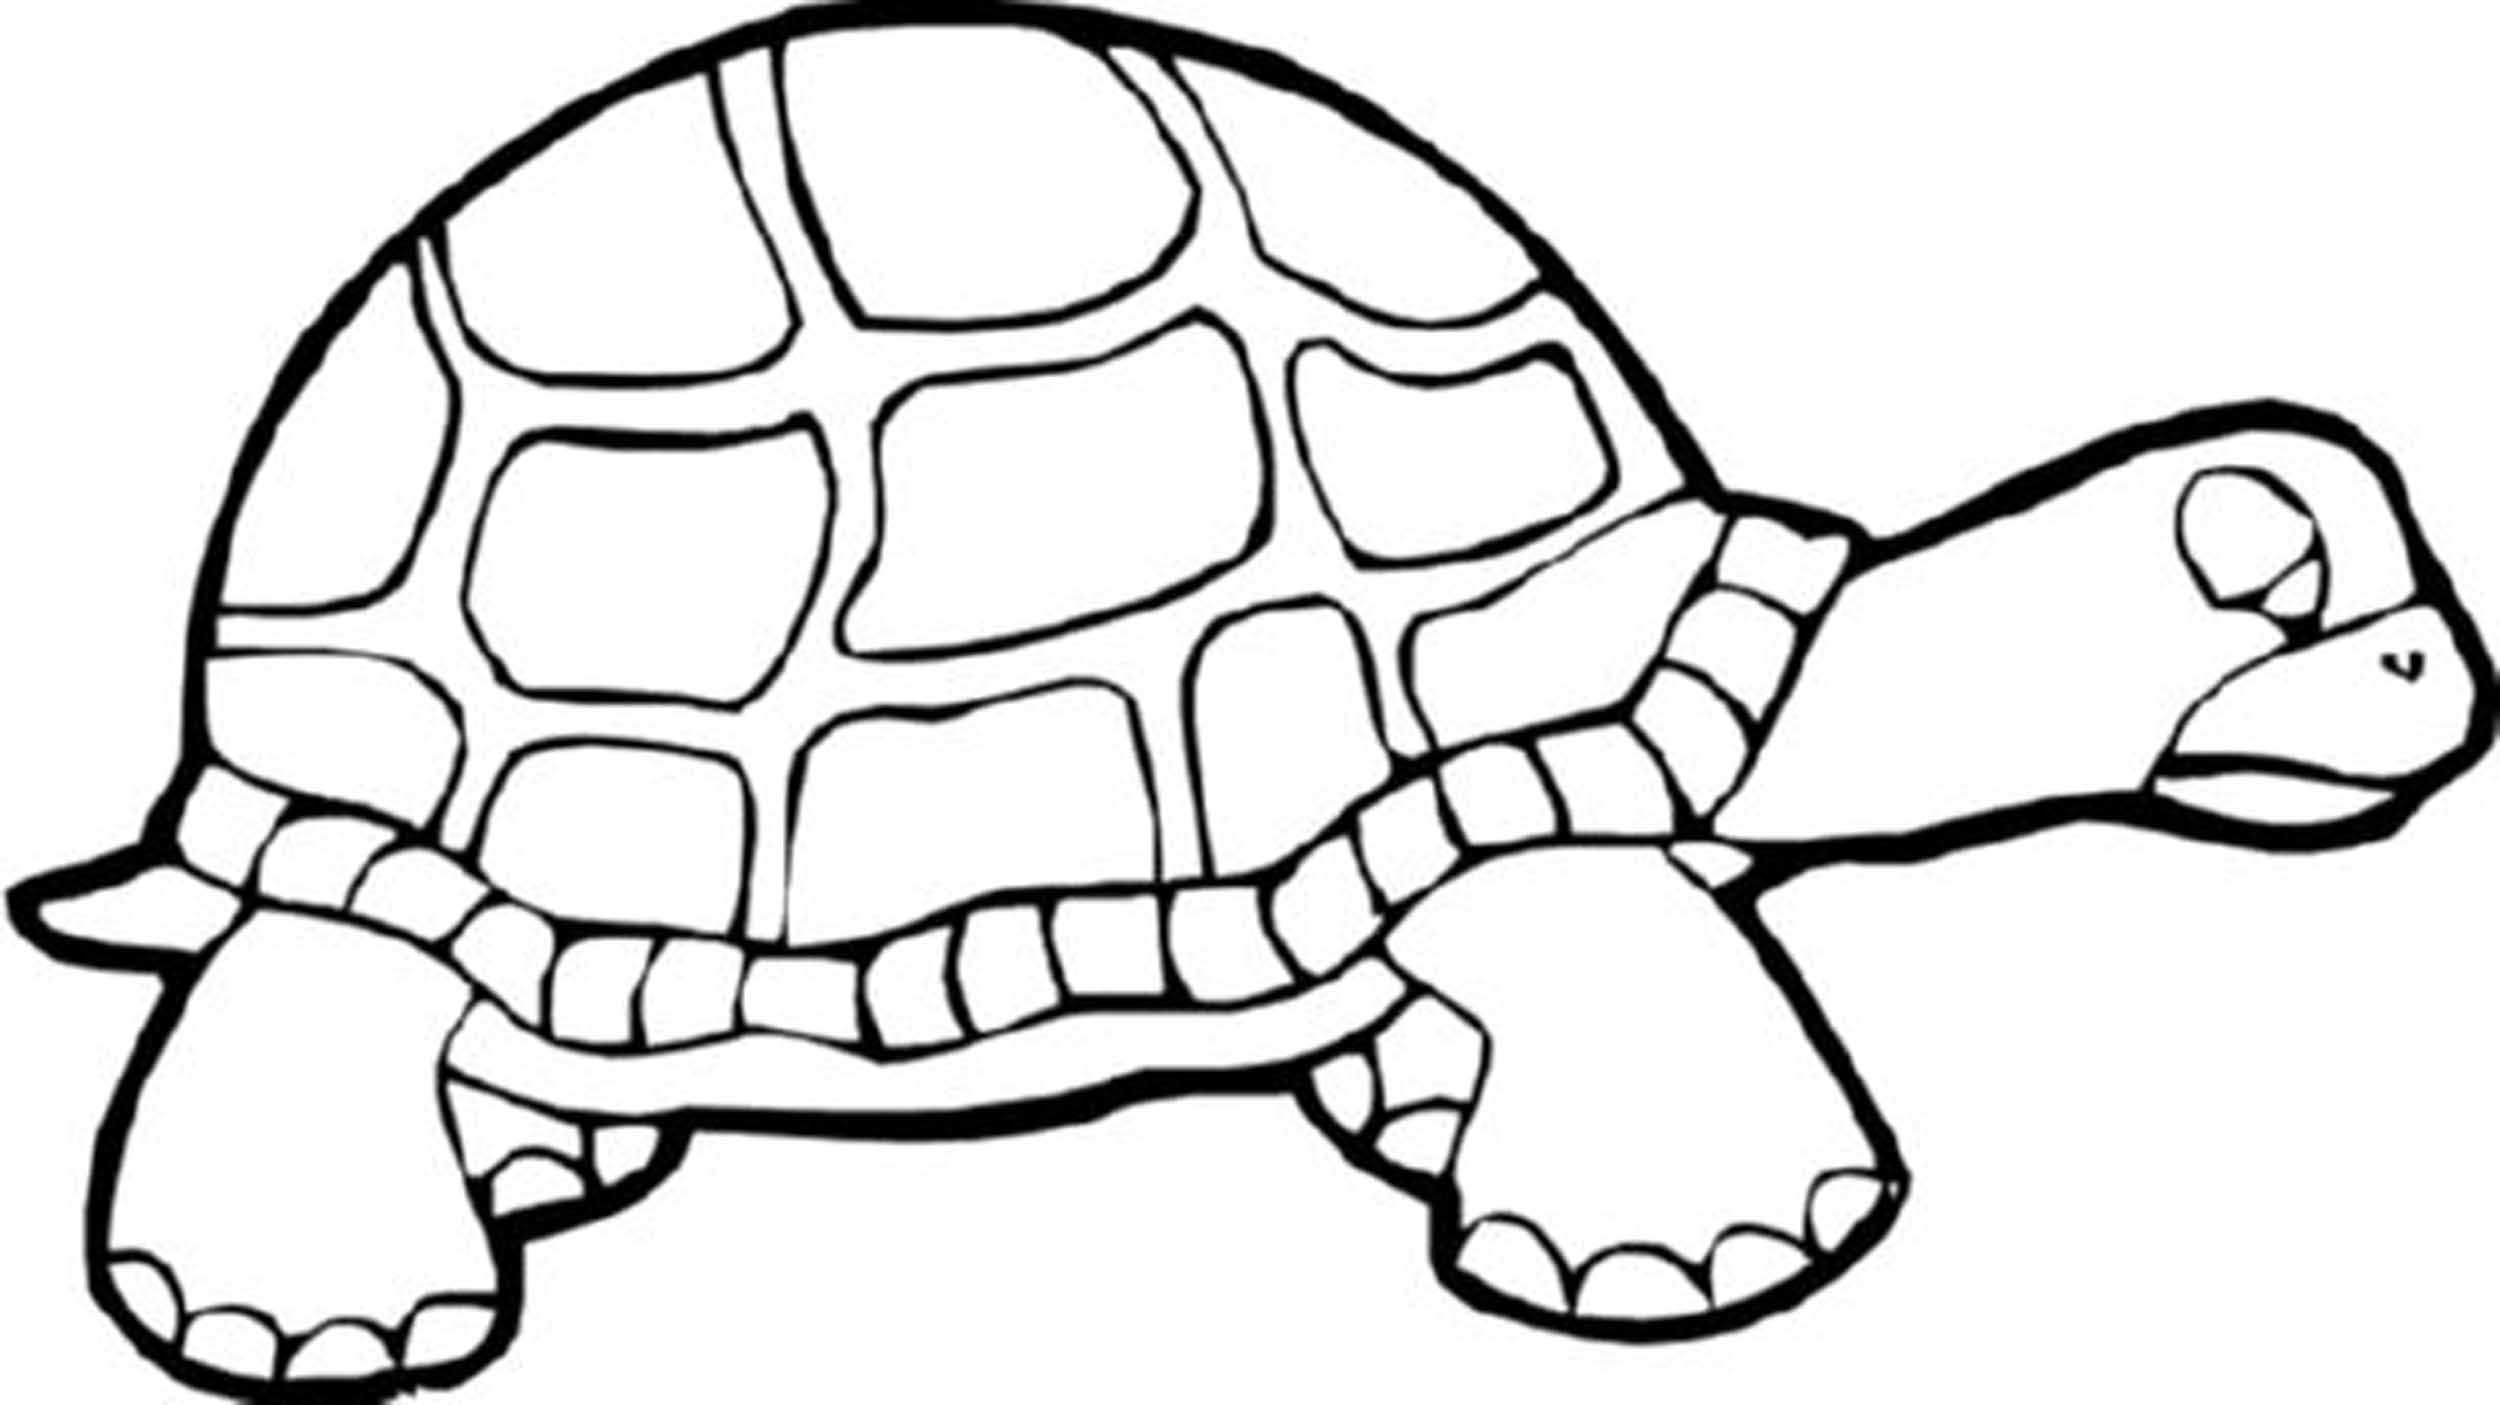 turtle pictures for coloring turtles for children turtles kids coloring pages turtle coloring for pictures